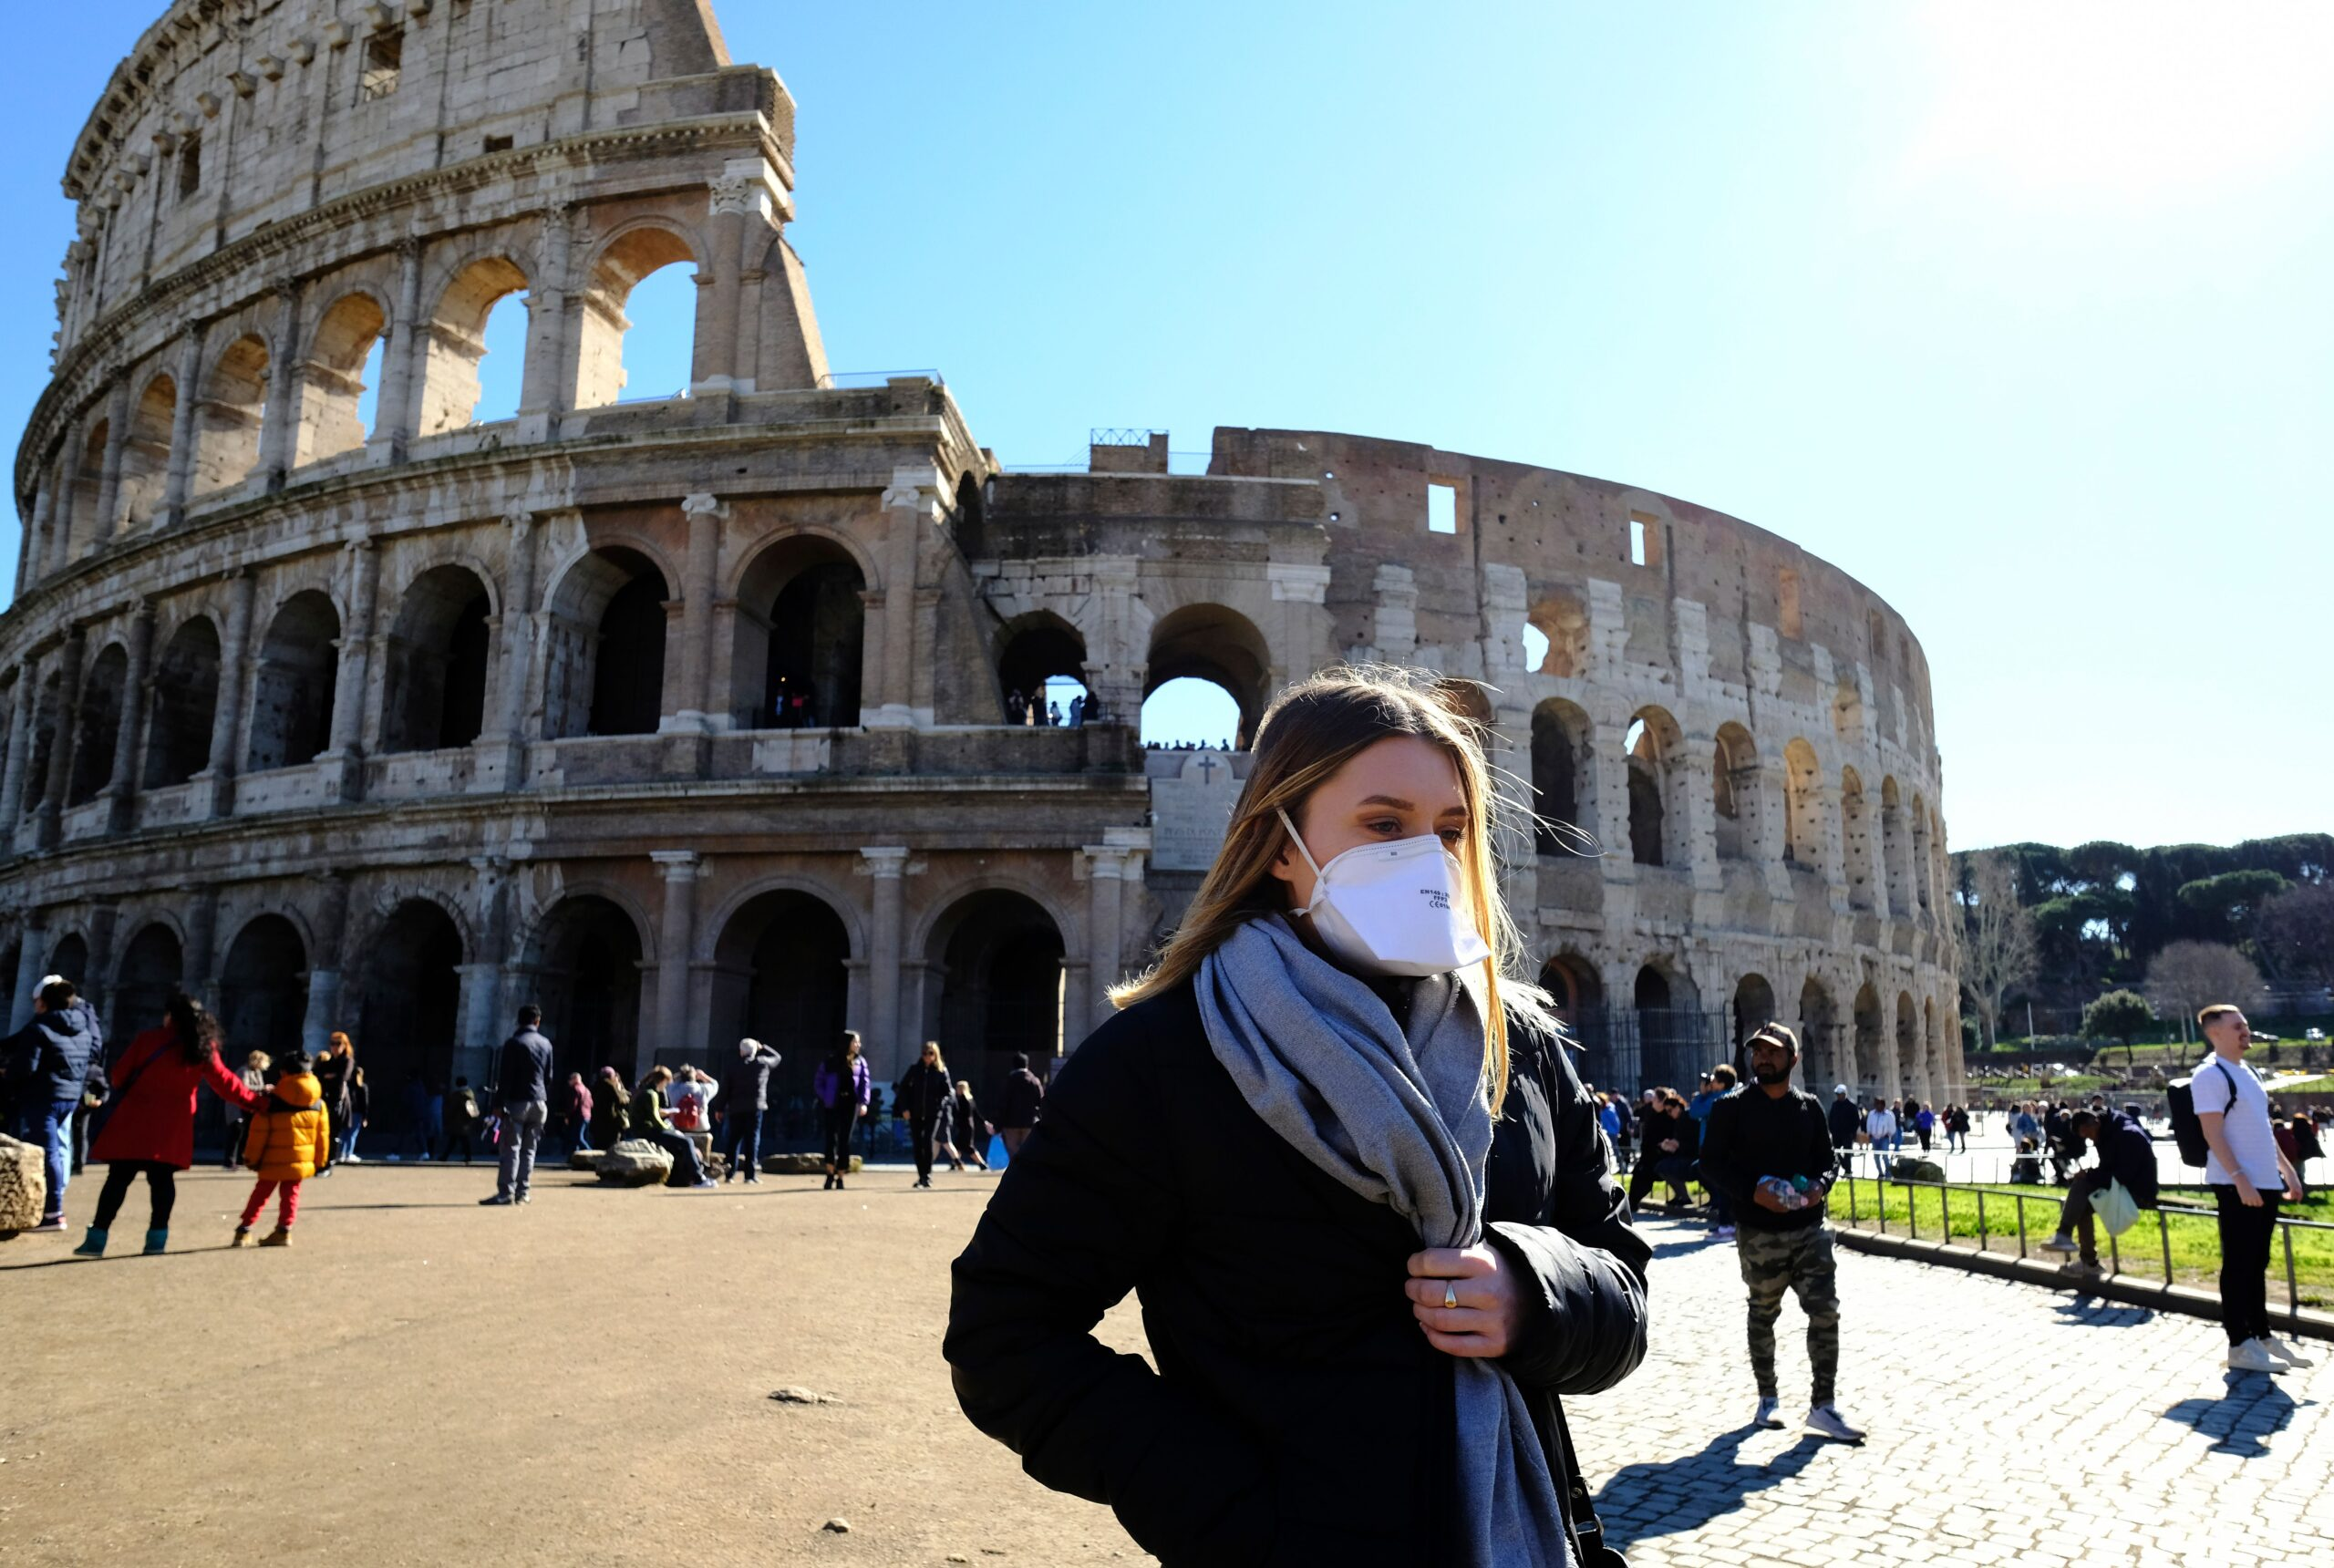 COVID-19 has become less deadly in Italy, health expert says